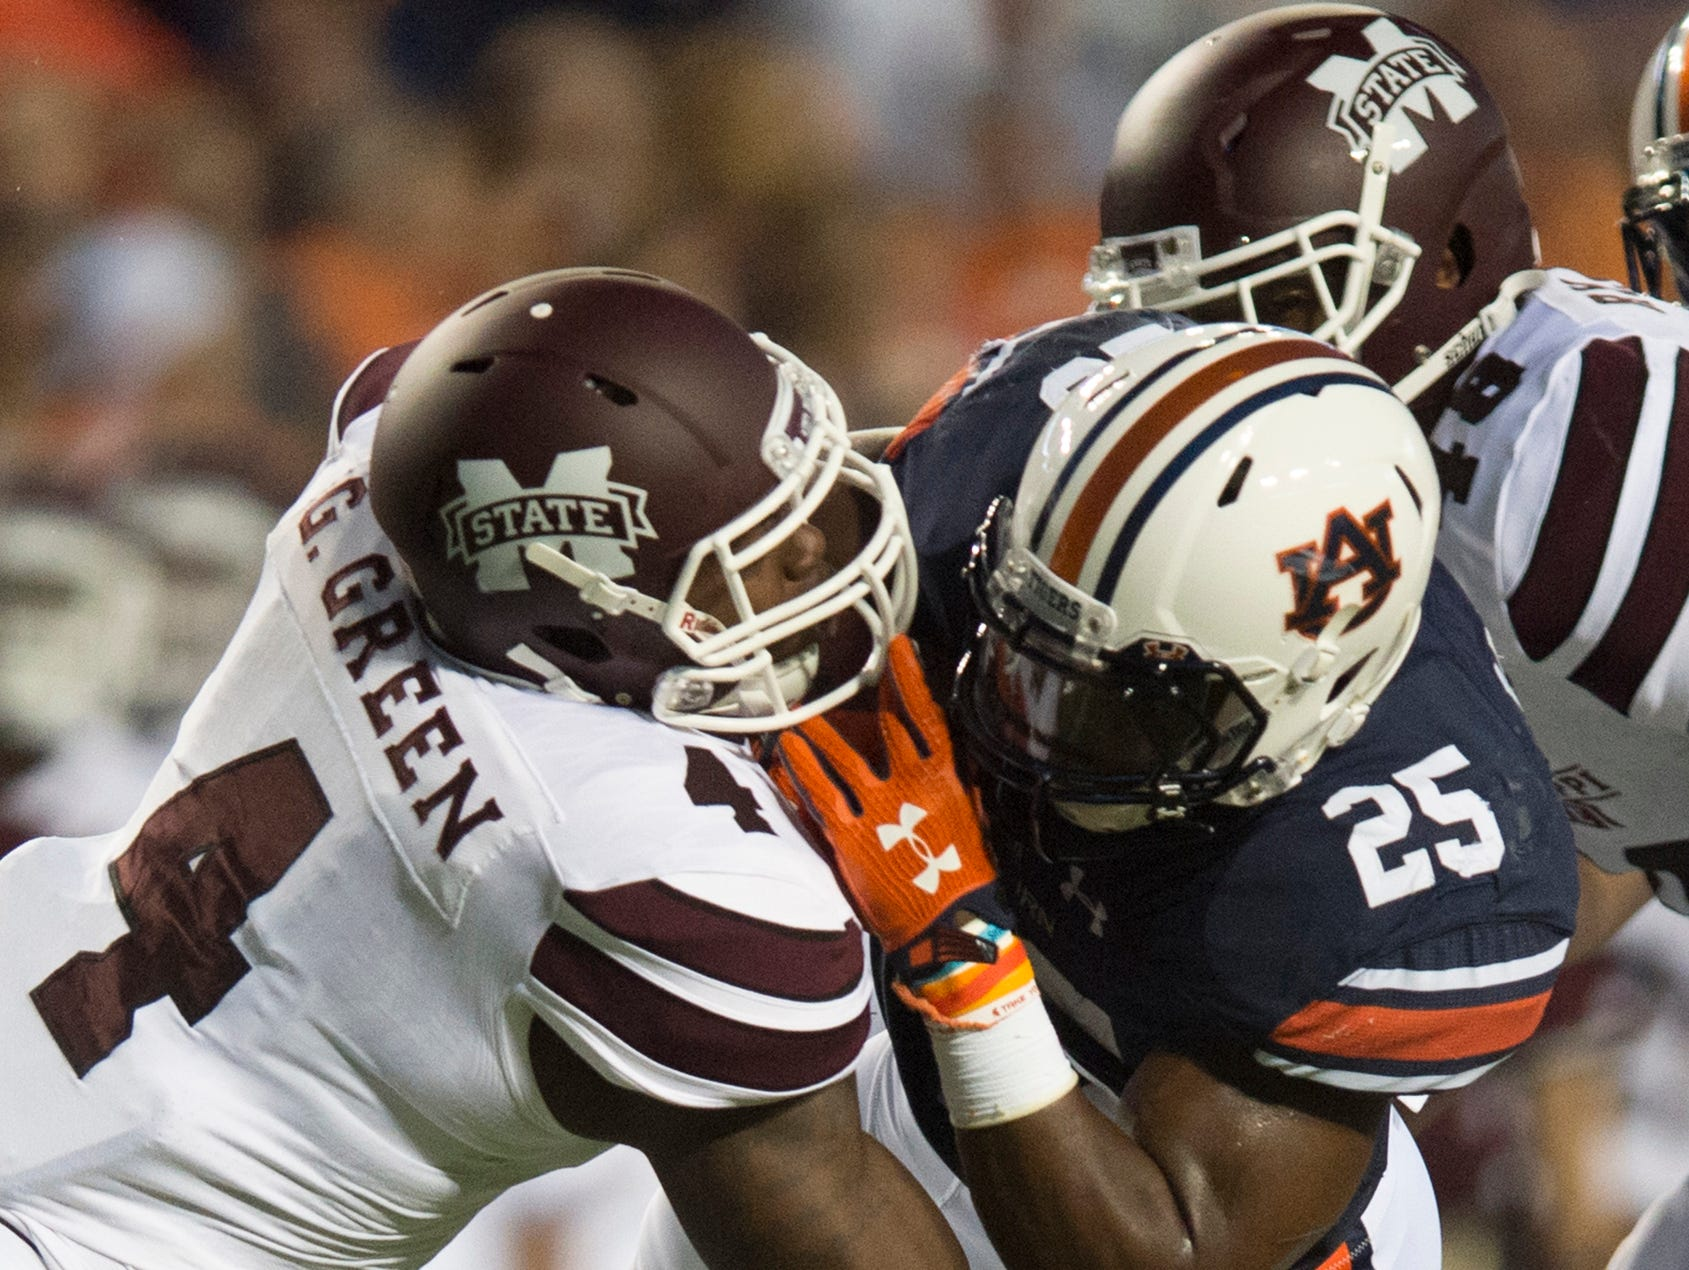 Mississippi State linebacker Gerri Green (4) tackles Auburn running back Peyton Barber (25) during the NCAA football game between Auburn and Mississippi State on Saturday, Sept. 26, 2015, at Jordan-Hare Stadium in Auburn, Ala. Albert Cesare / Advertiser